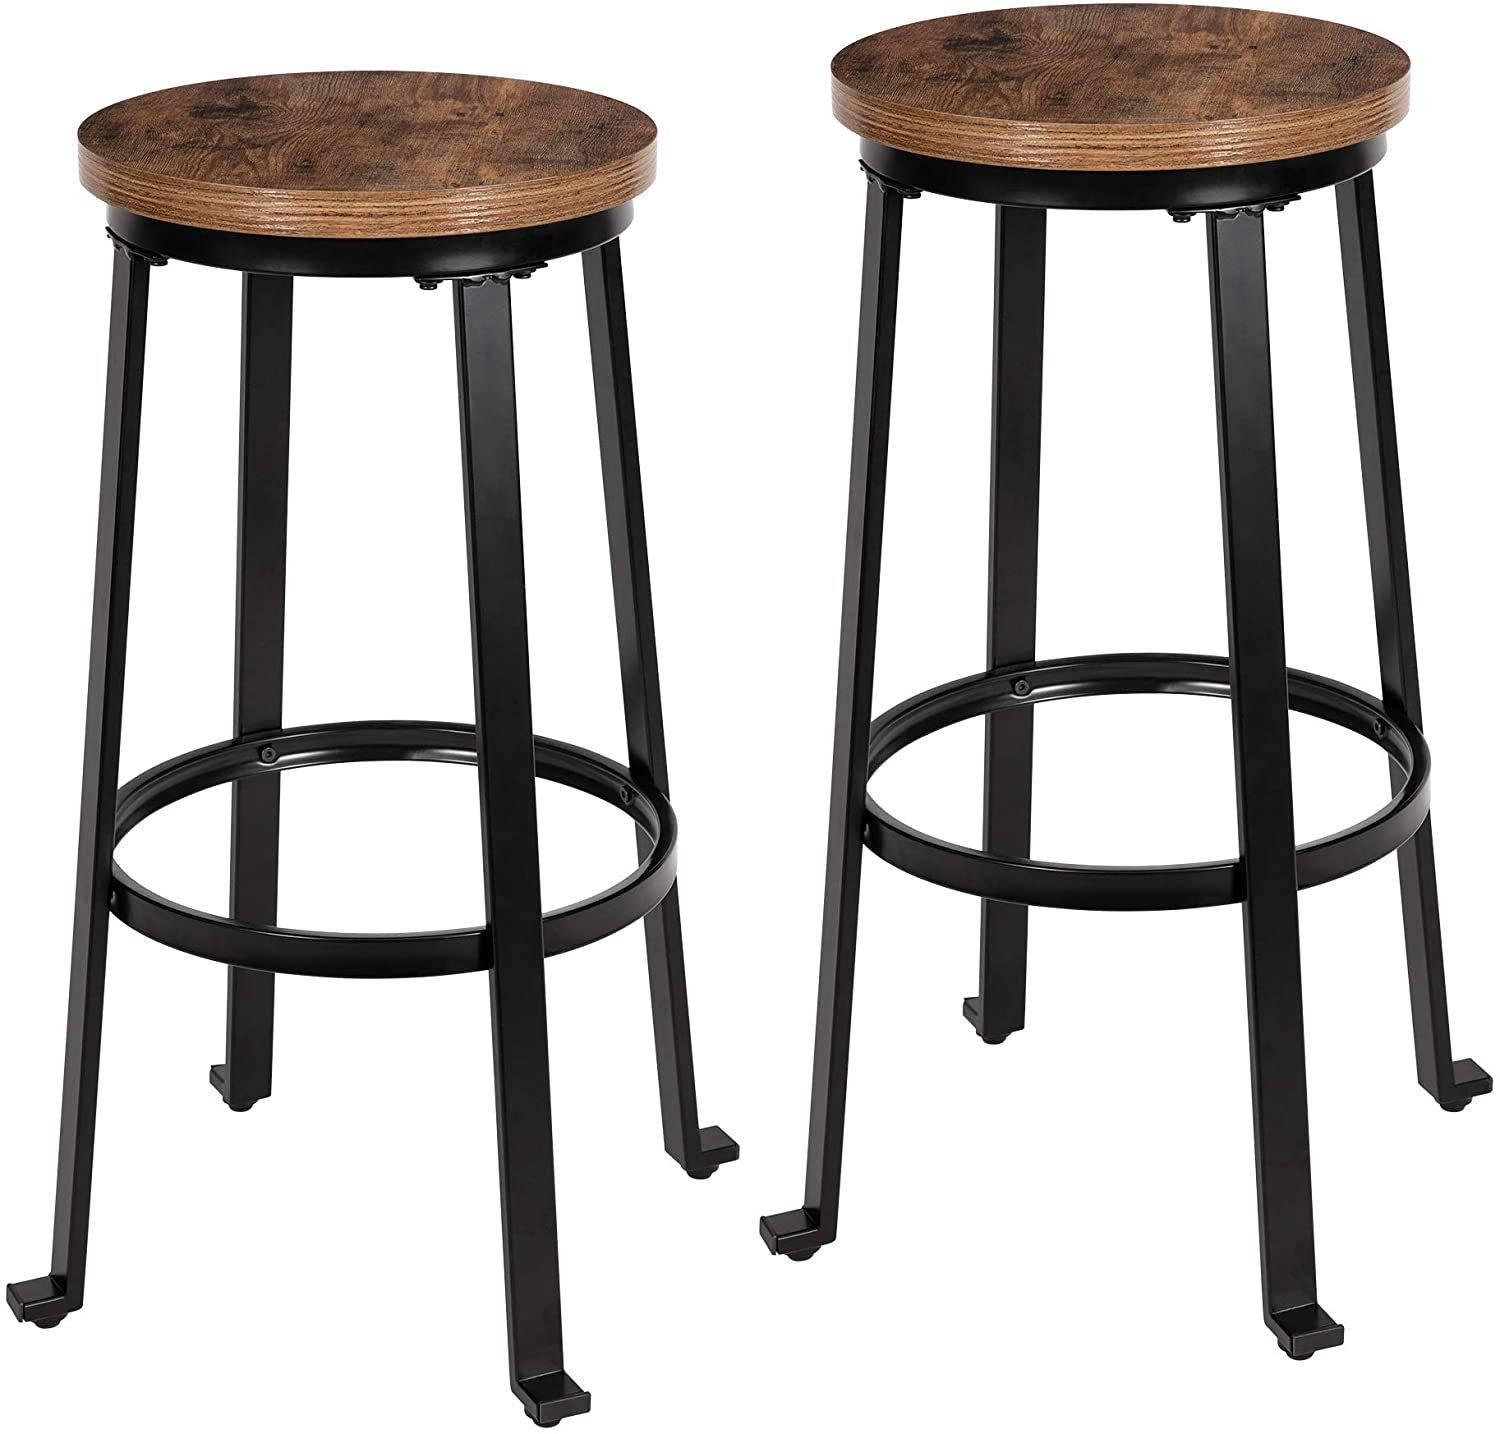 "KOZYSPHERE Bar Stools - 29"" Pub Height Chairs with Metal Frame - Backless Barstools - Set of 2 - Rustic Brown"